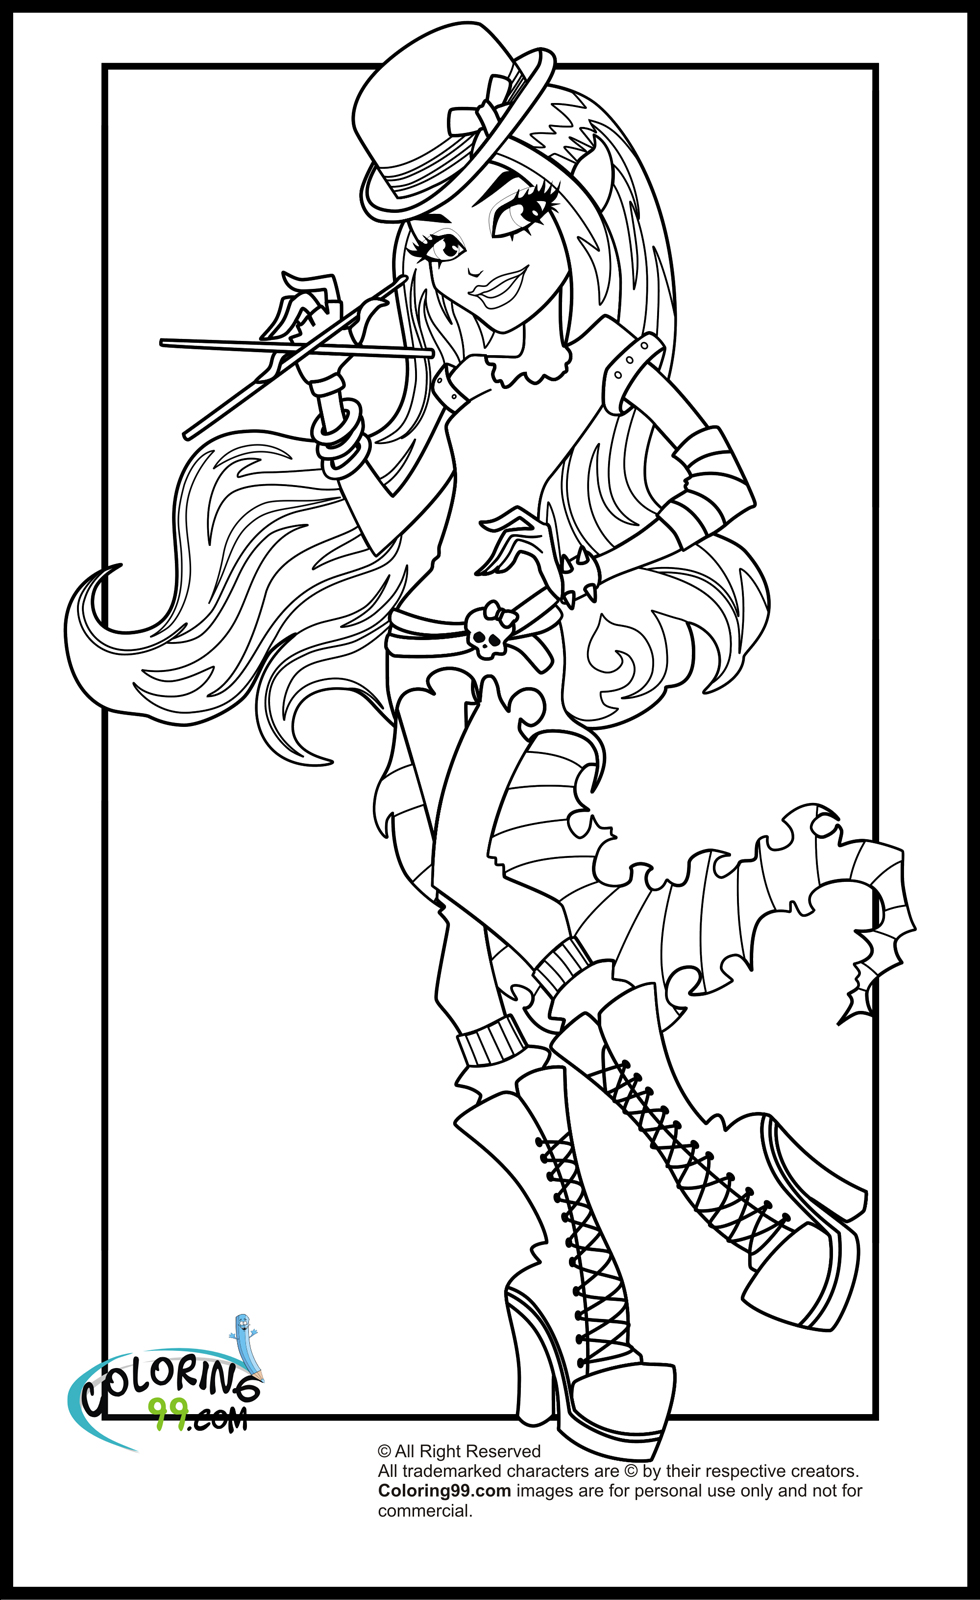 Monster high coloring pages team colors for Monster high printables coloring pages